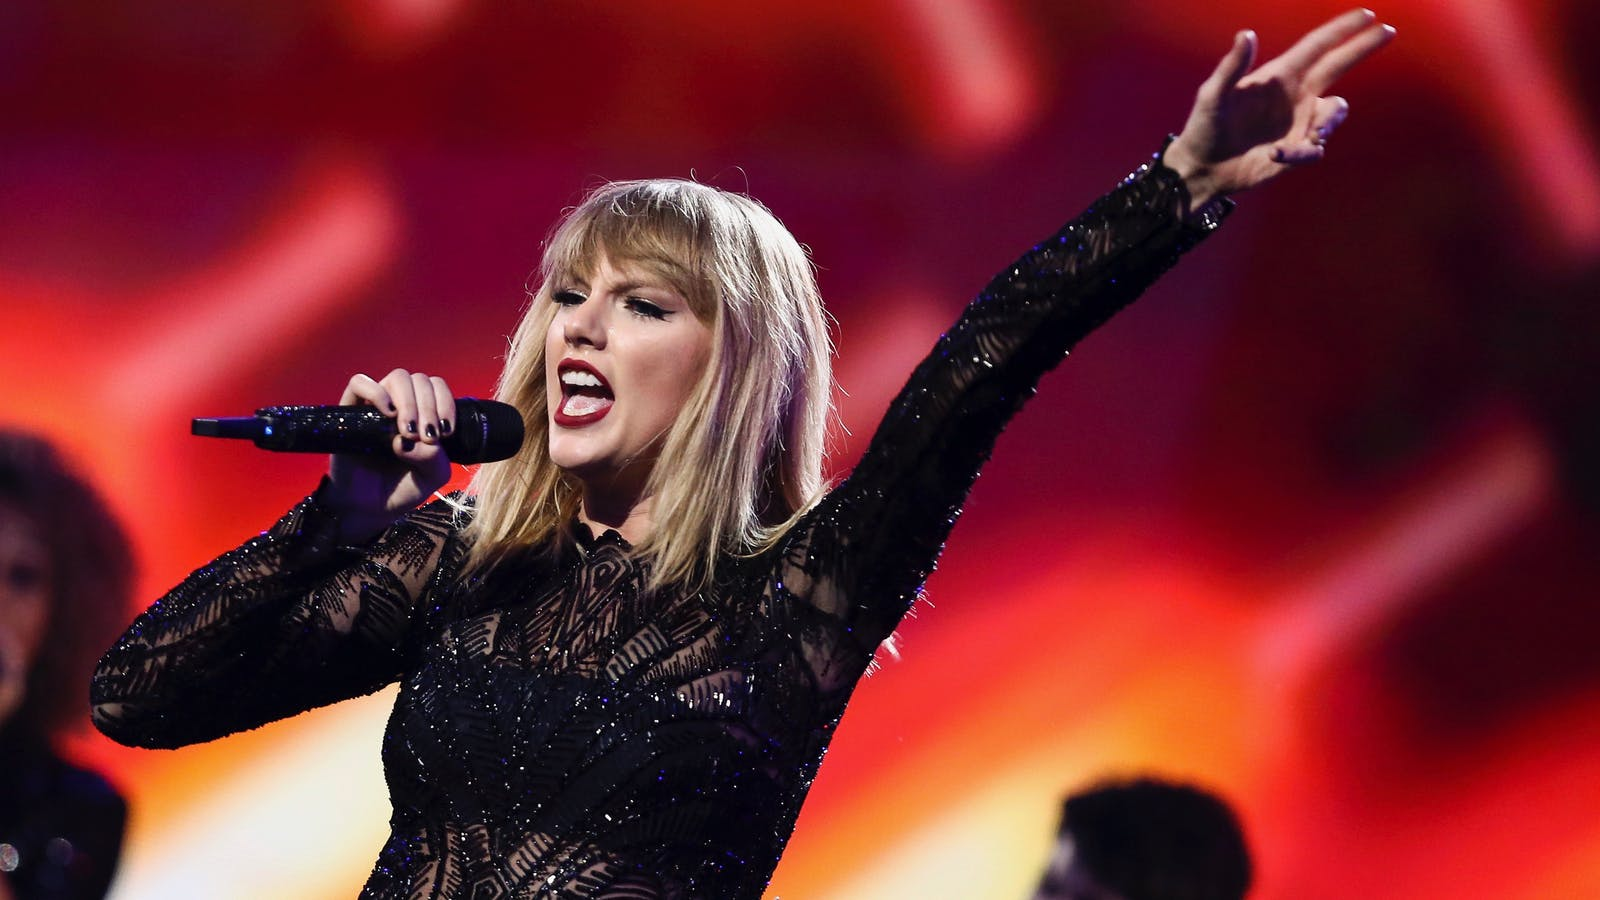 Taylor Swift at a DirecTV Now concert before the Super Bowl earlier this month. Photo by AP.